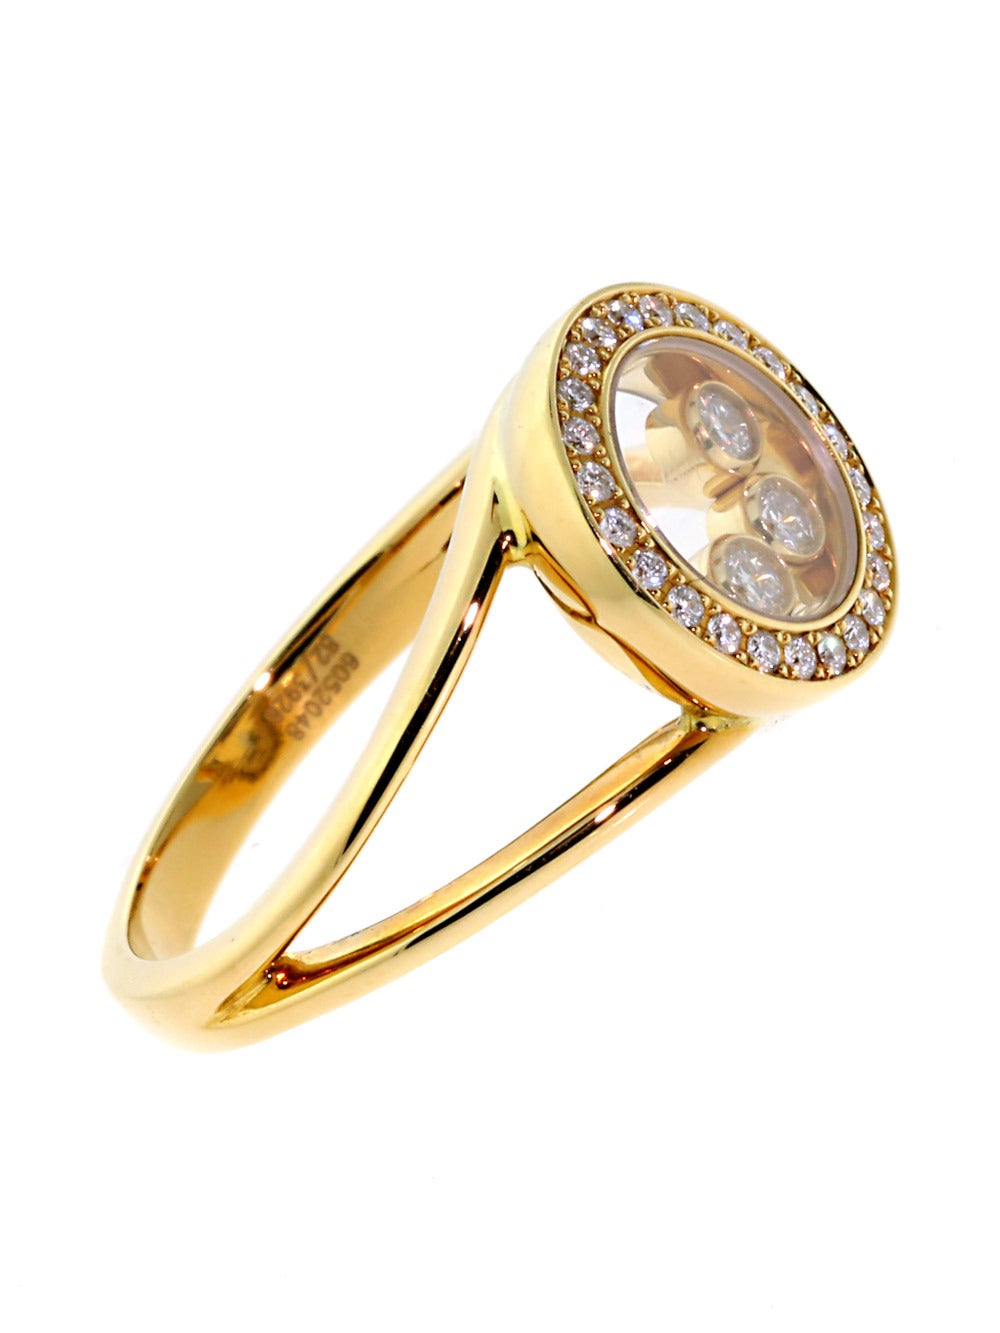 Id J 2009333 furthermore Opal Engagement Rings moreover How To Sell My Jewelry For Cash as well Id J 538342 in addition Id J 68536. on oscar heyman emerald ring